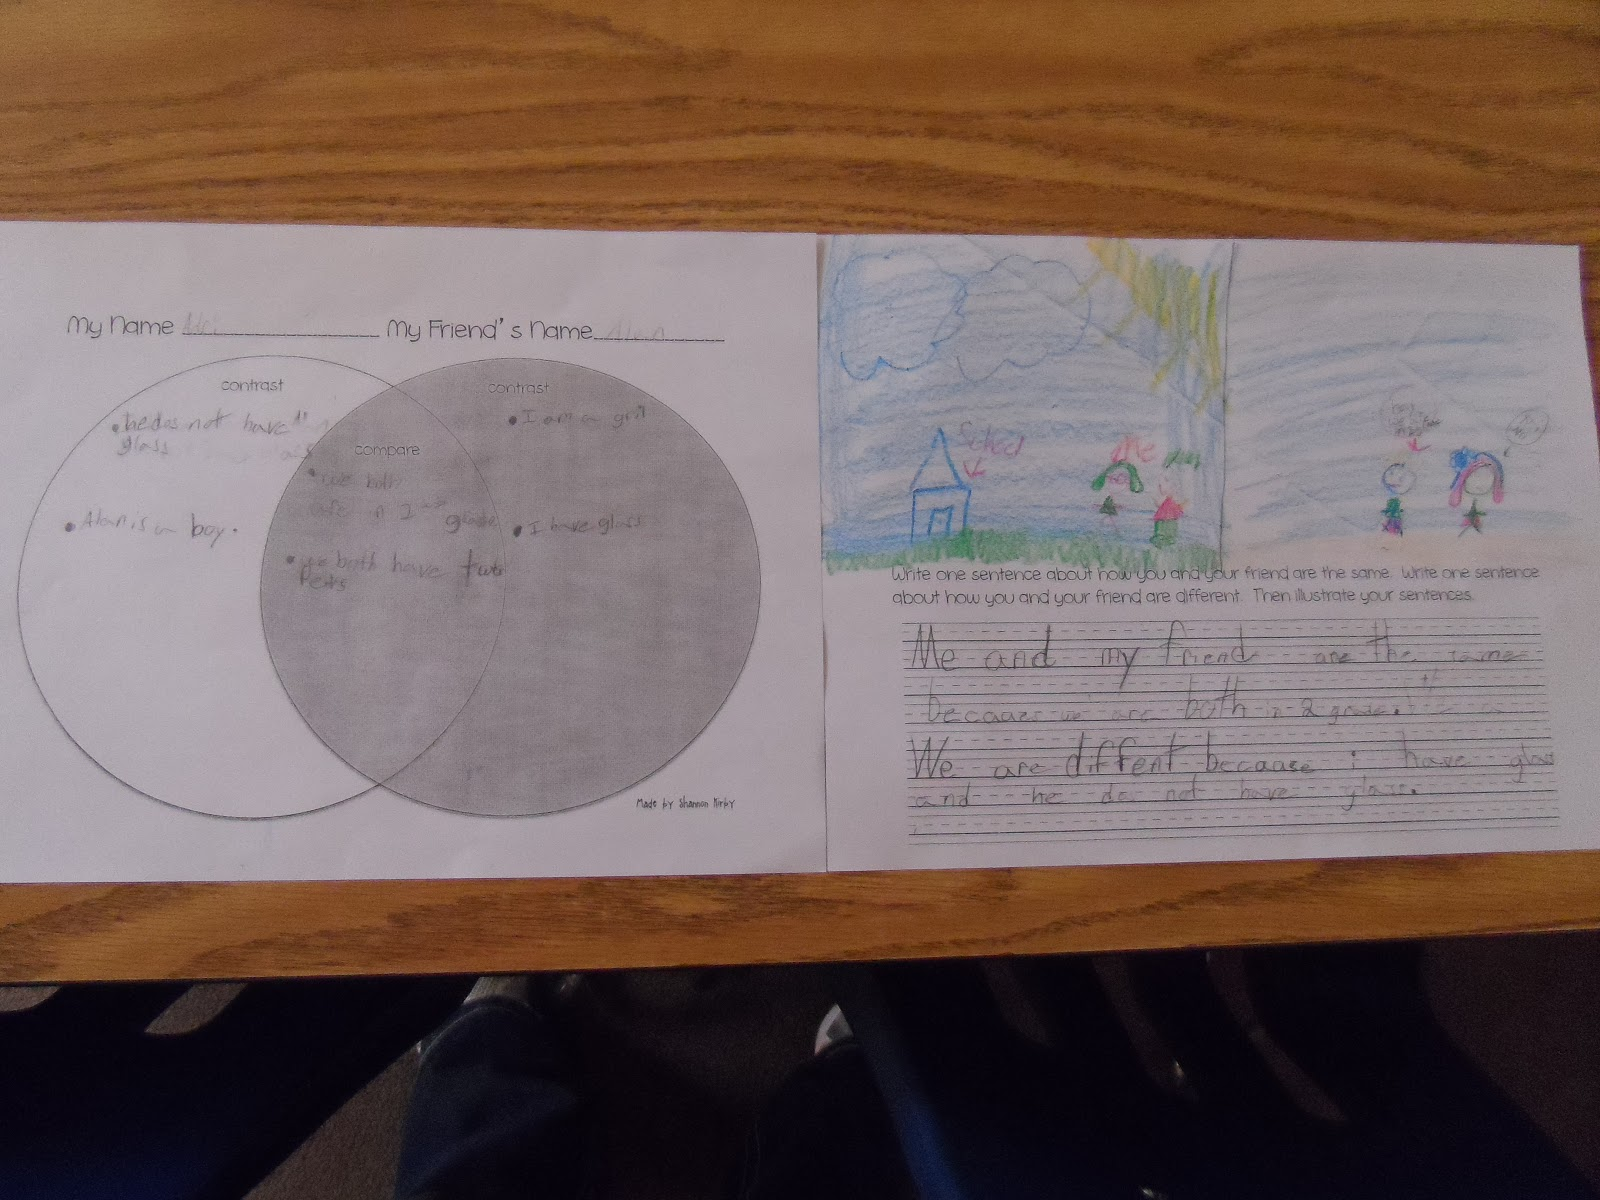 compare and contrast essay on two friends